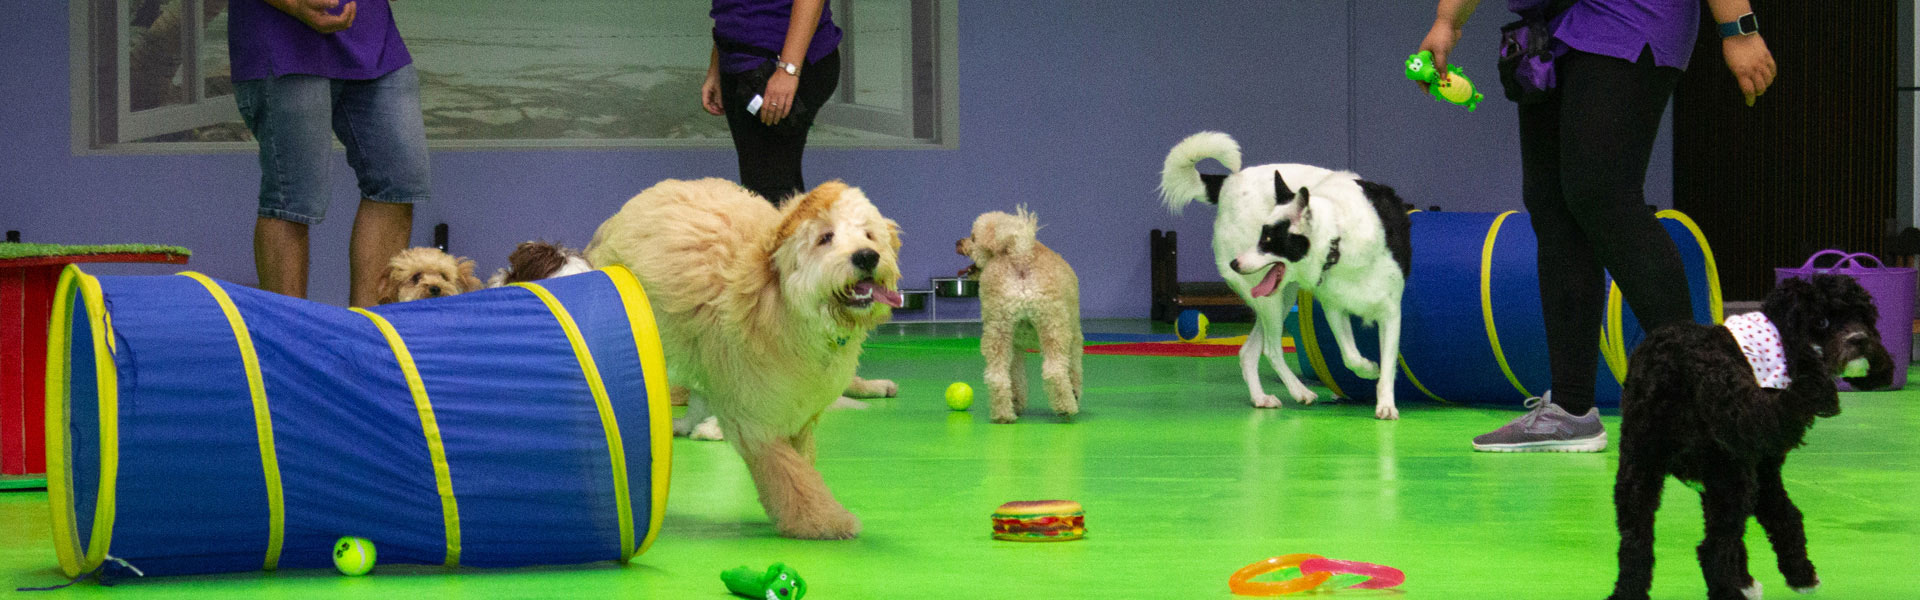 Dogs Playing at a Doggy Daycare